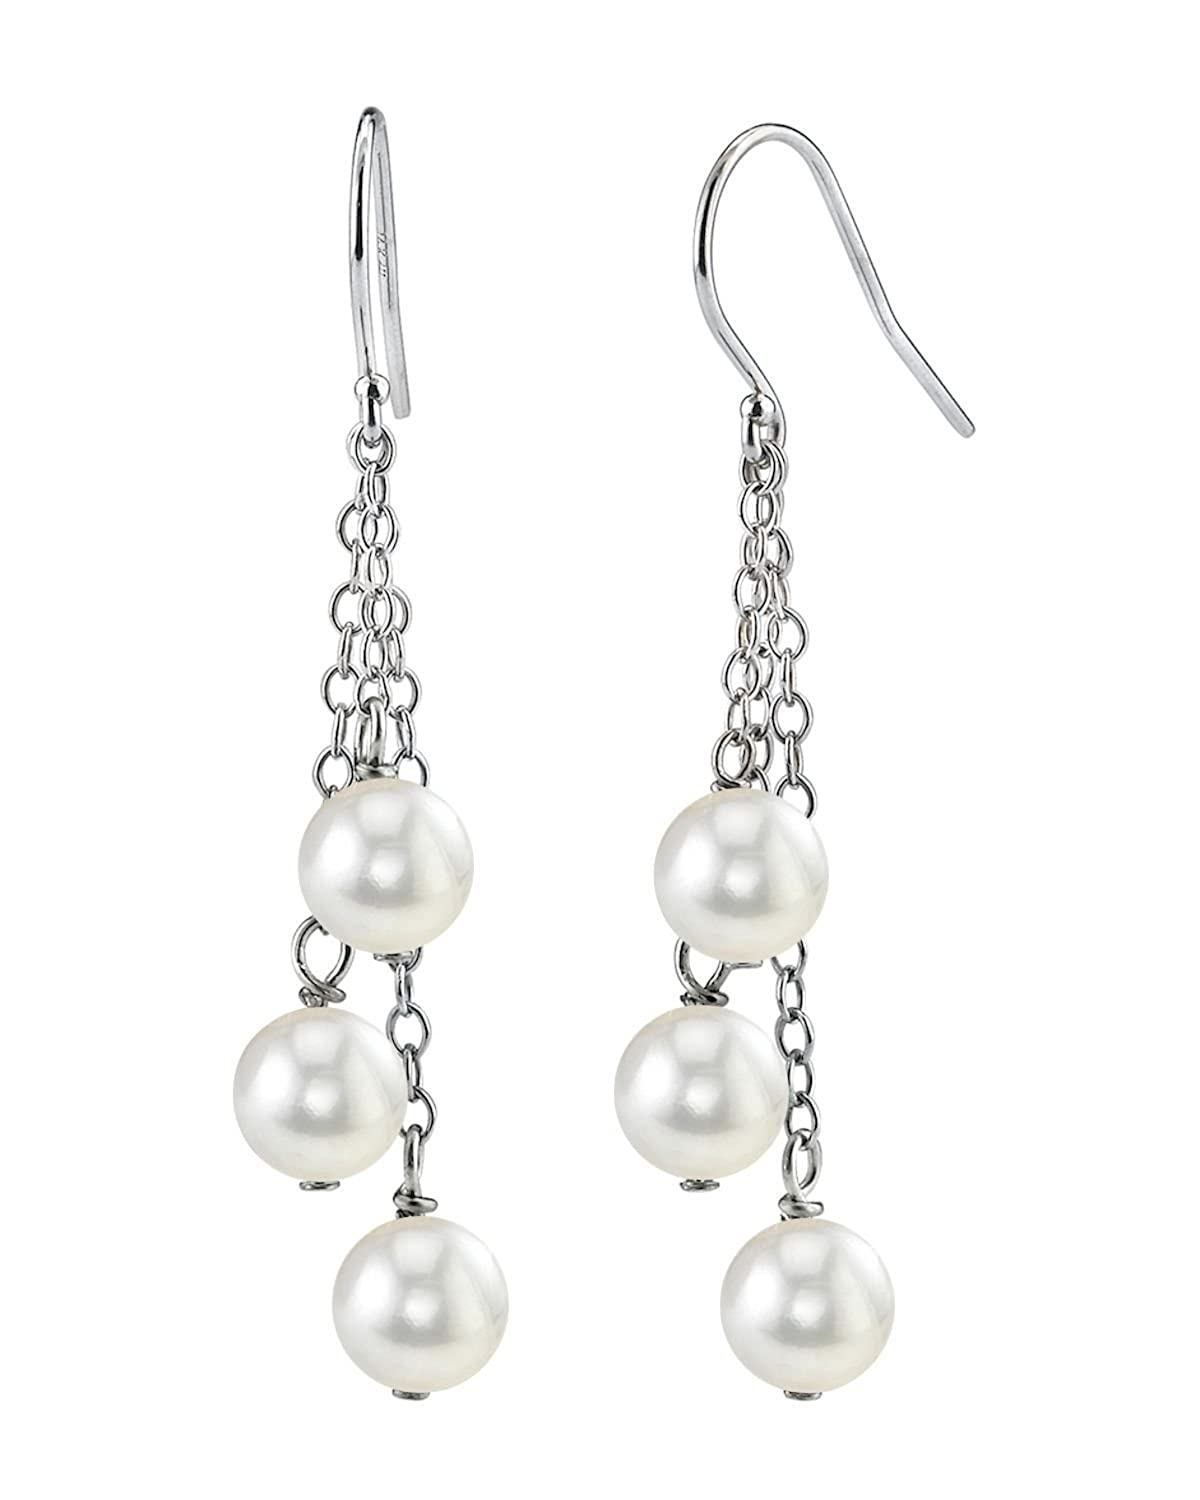 14K Gold 7mm White Freshwater Cultured Pearl Cluster Earrings